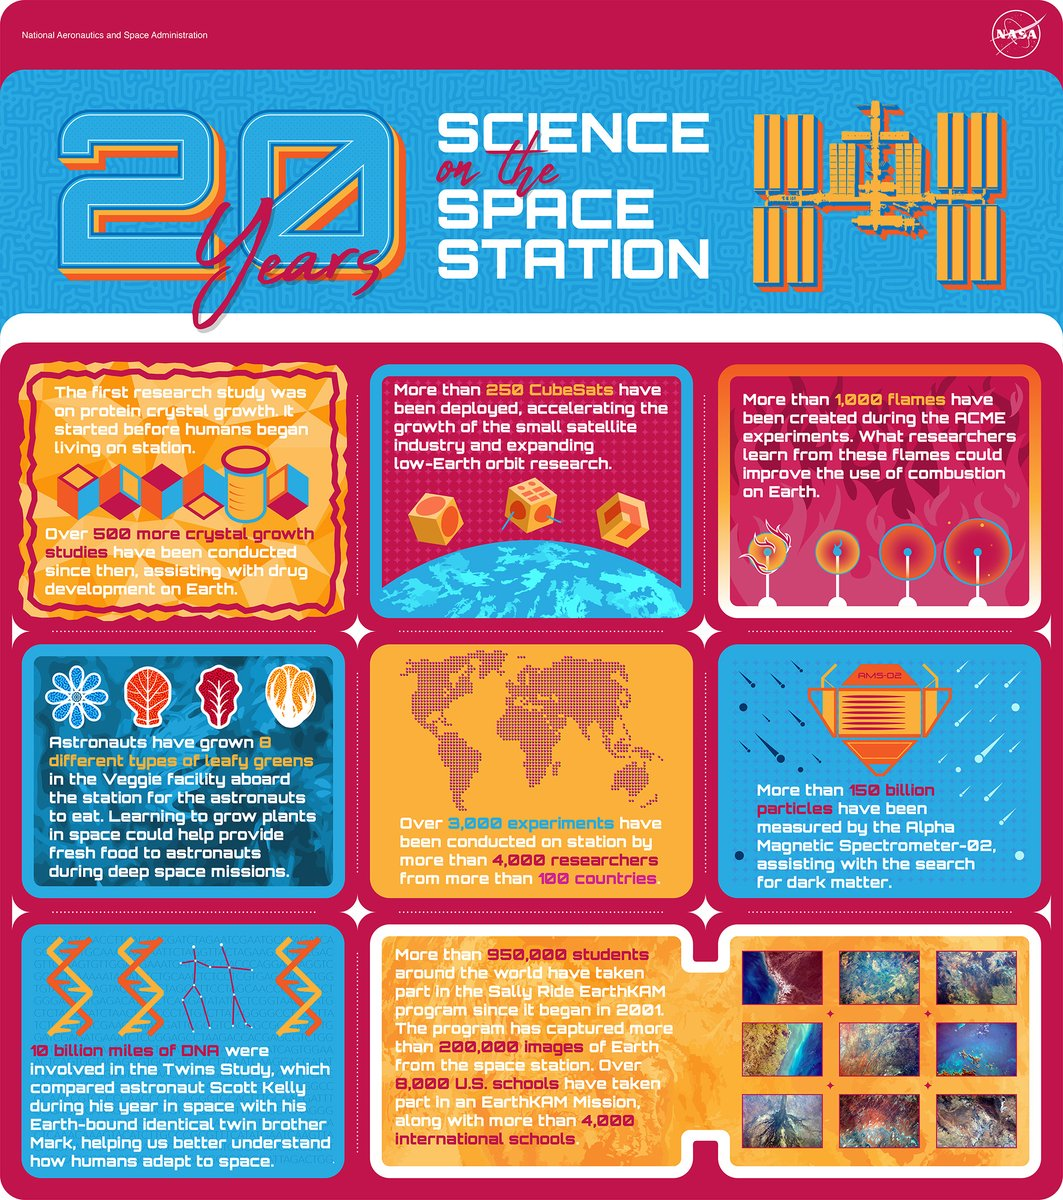 Next week marks 20 years of continuous human habitation of the @Space_Station. From studying fire🔥 to DNA🧬, we've conducted space station experiments in almost every area of science. #SpaceStation20th Take a closer look at a few scientific highlights: go.nasa.gov/2YehcXr